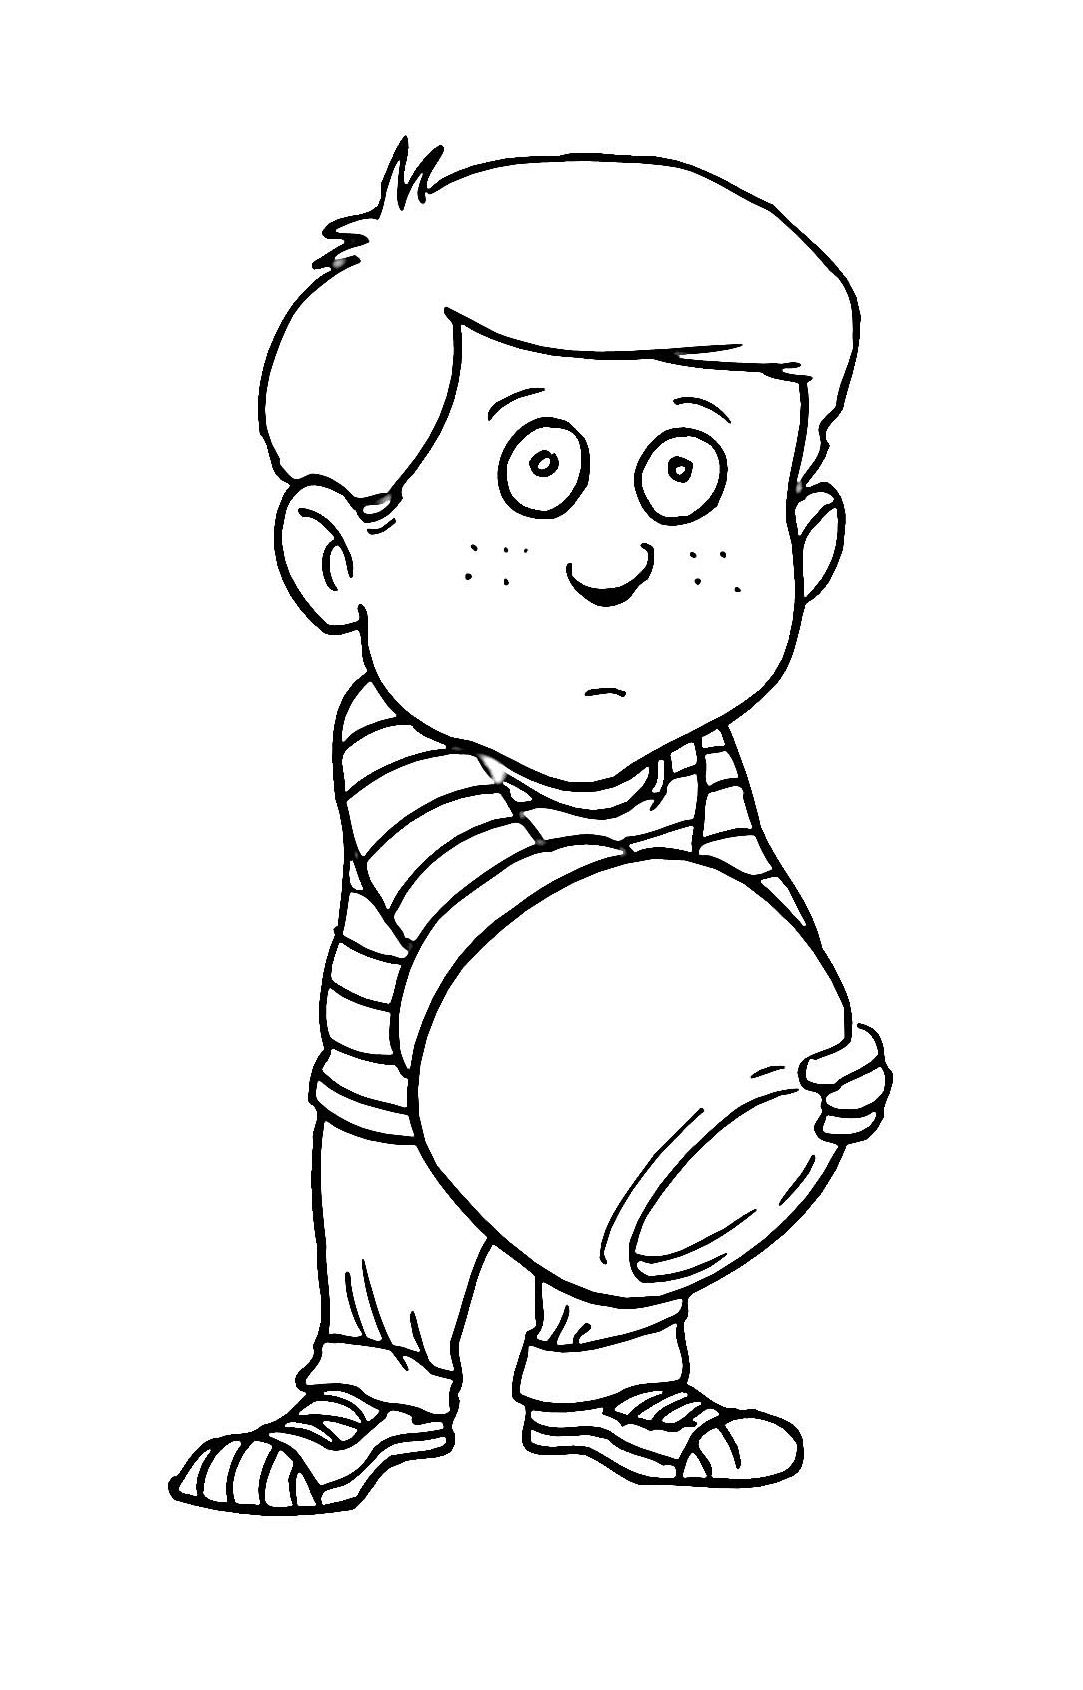 colouring page of a boy boy coloring pages to download and print for free page of a colouring boy